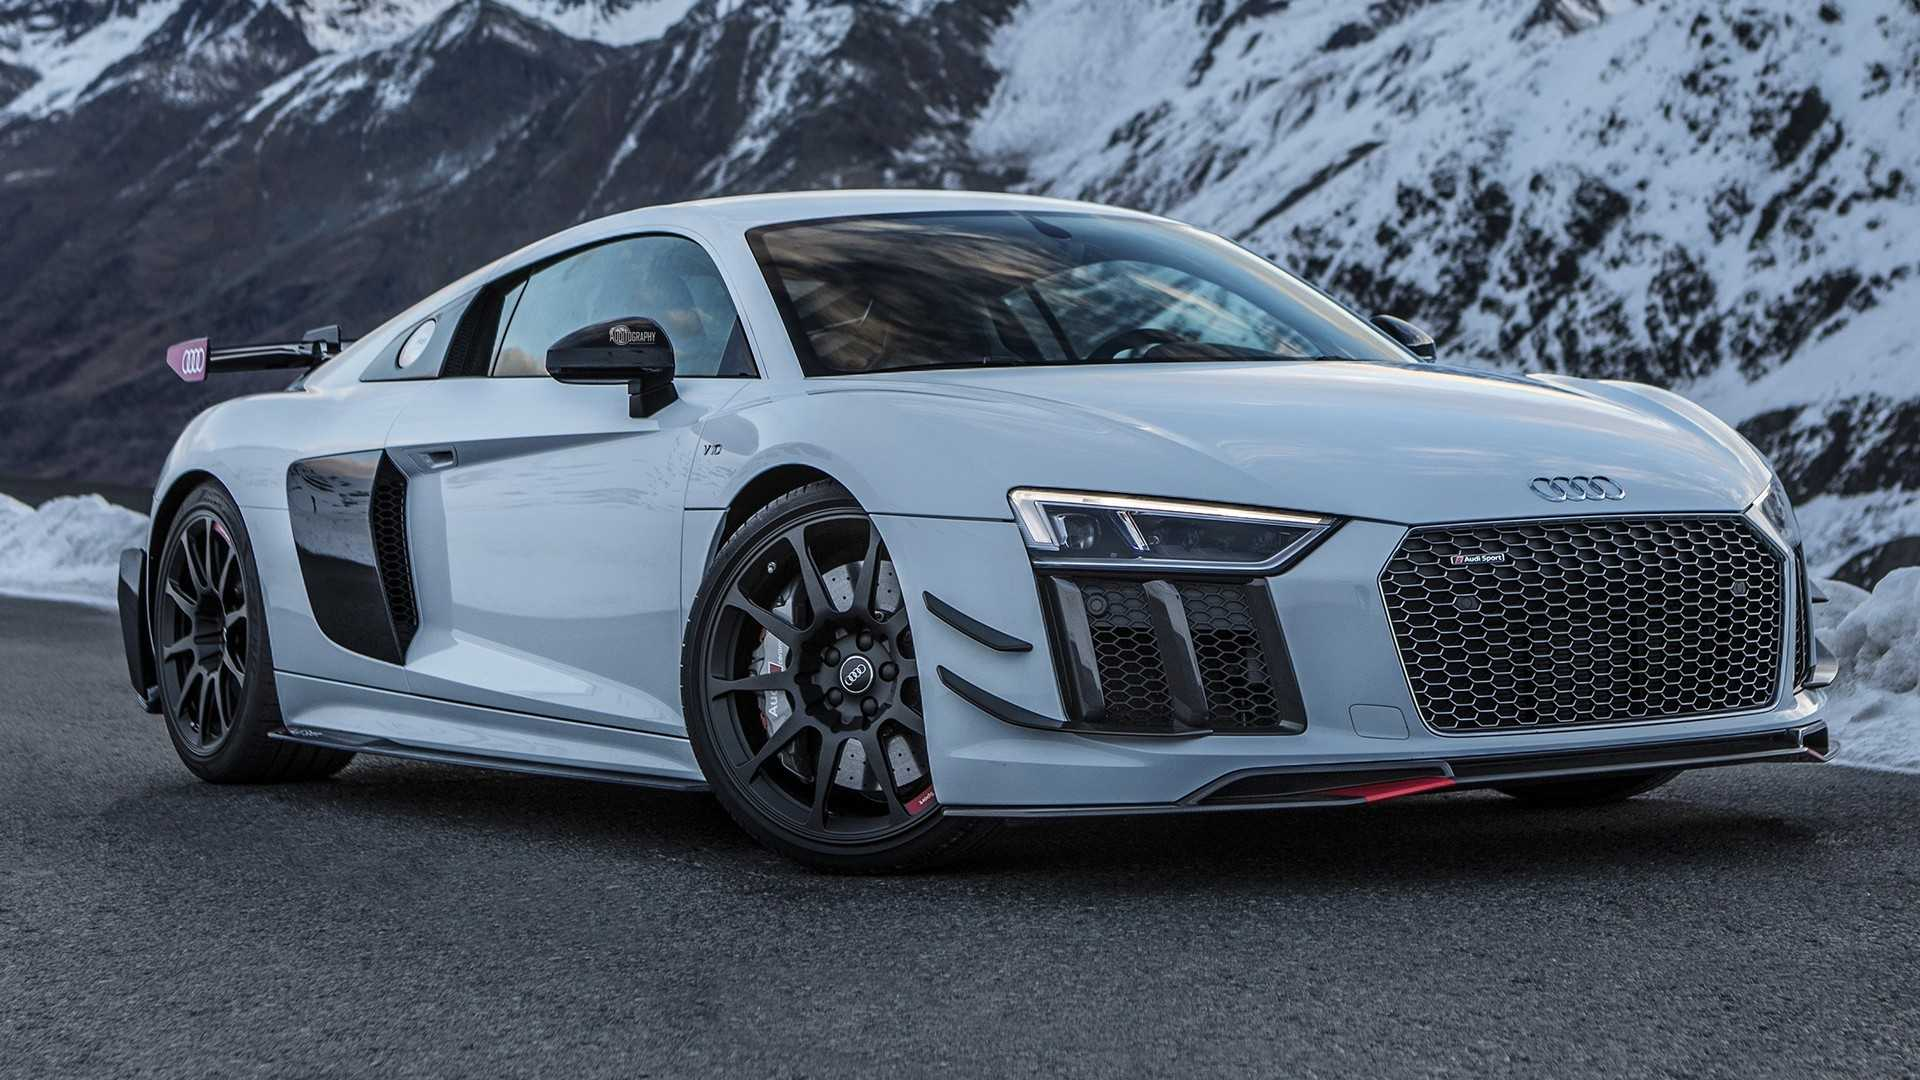 Audi R8 V10 Plus With Performance Parts Looks Epic In The Alps